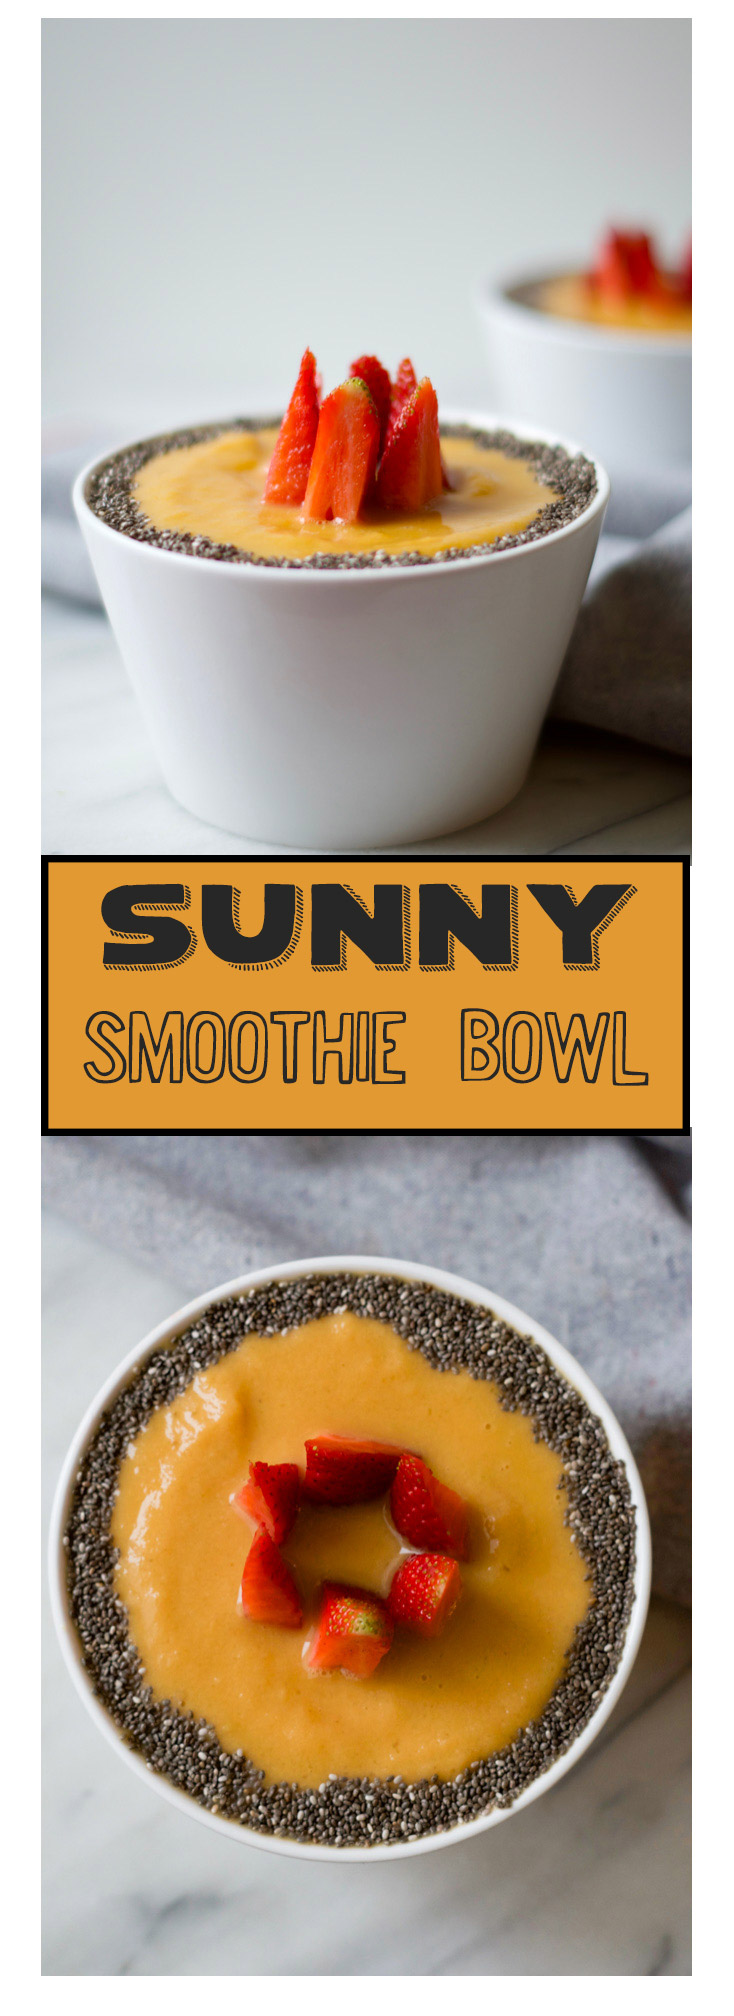 SUNNY SMOOTHIE BOWL BY BEAUTIFUL INGREDIENT